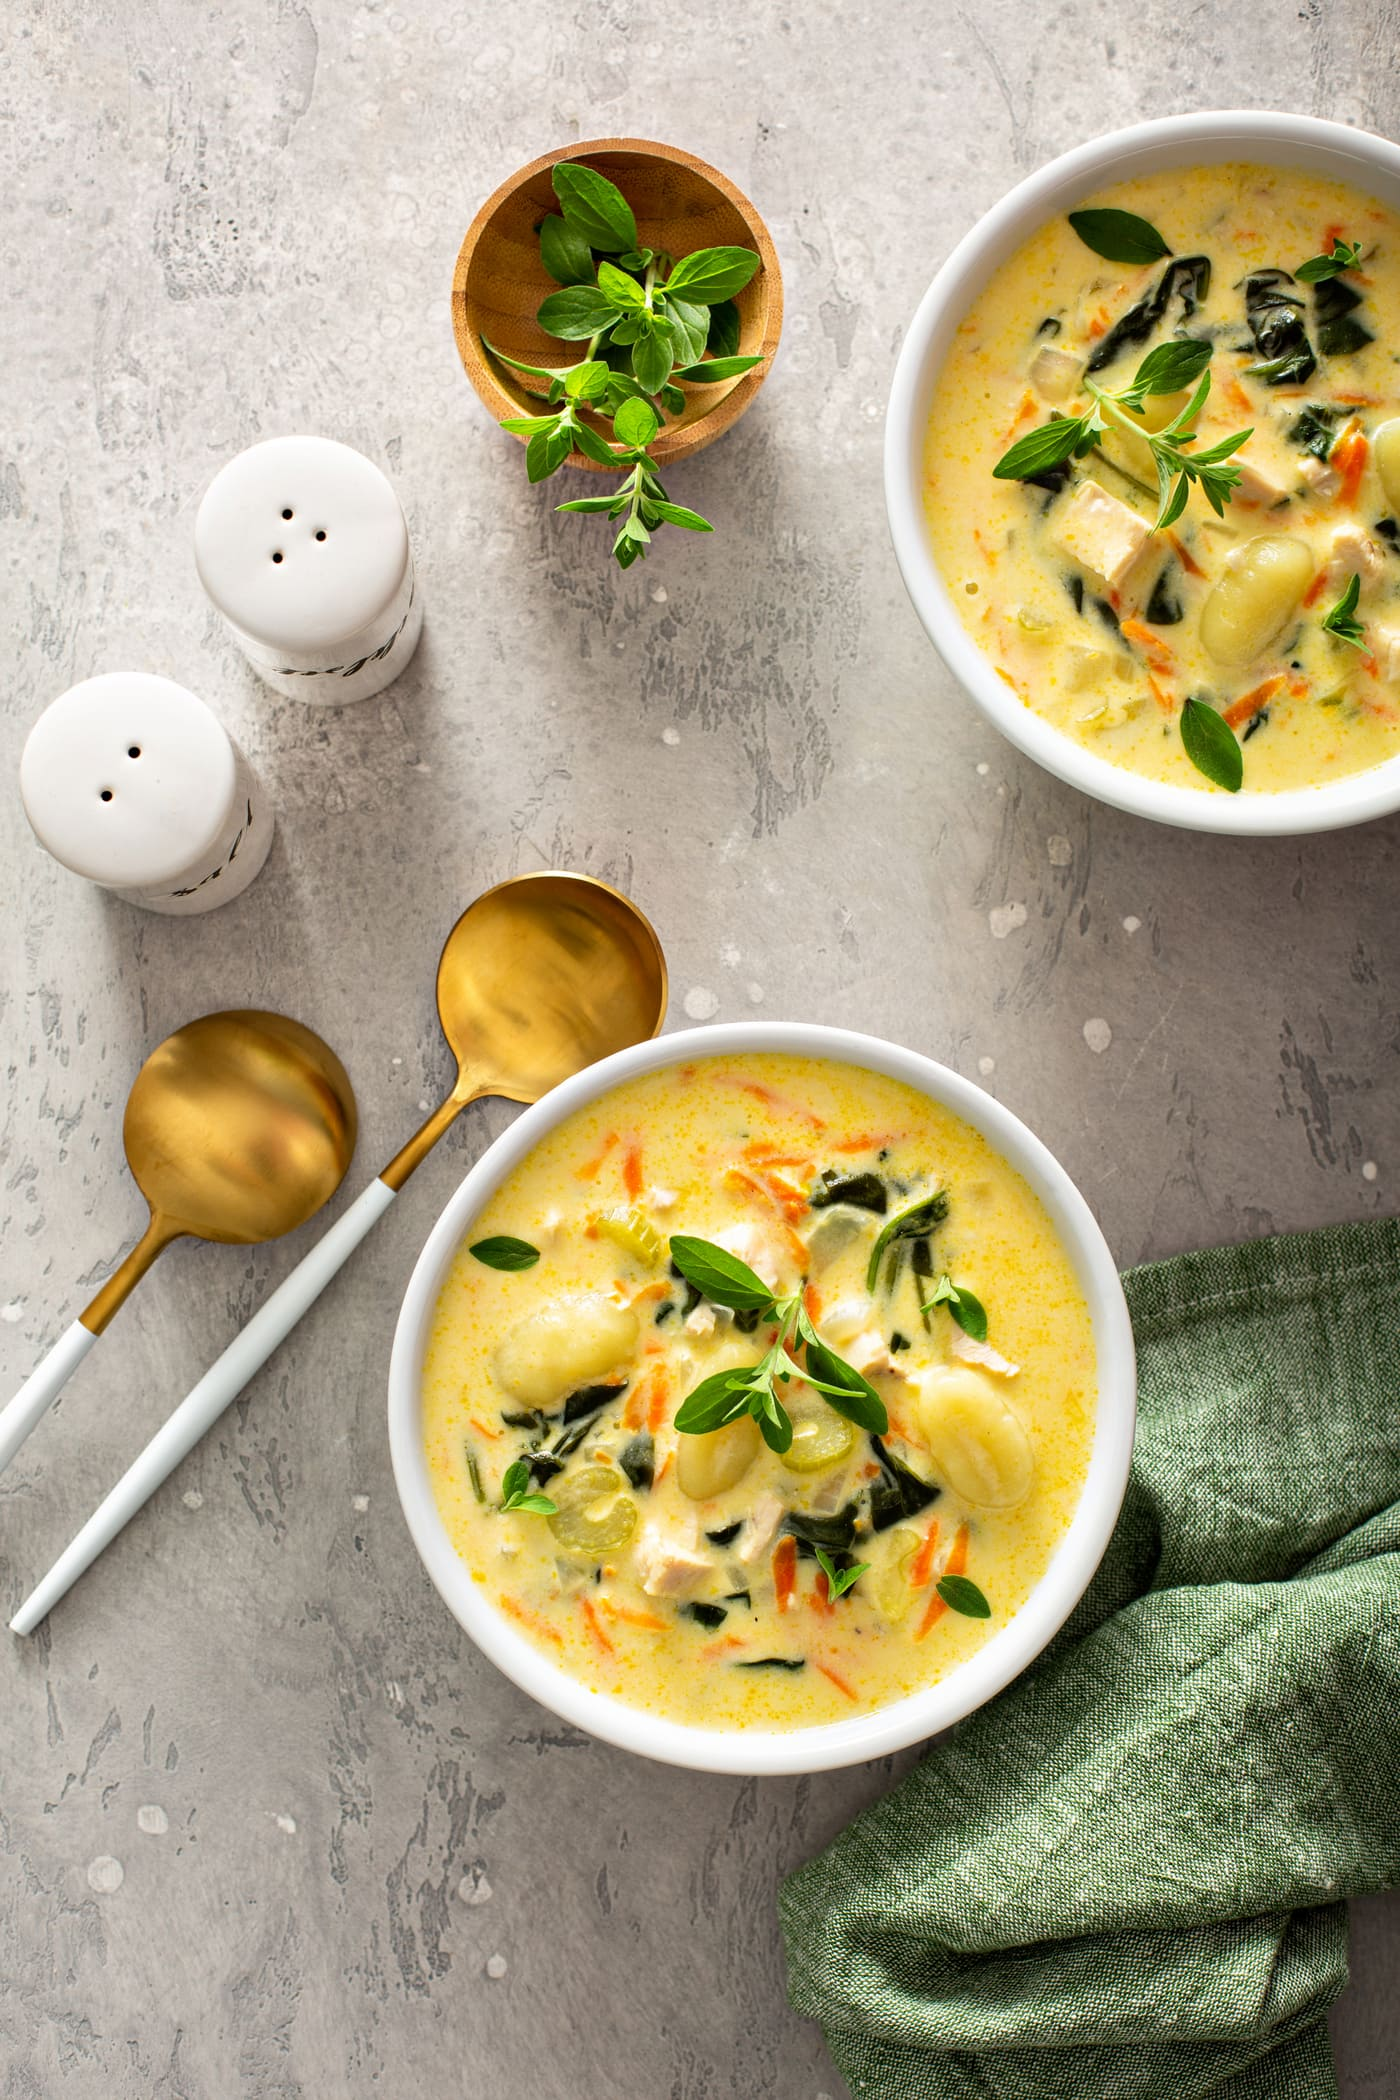 Two bowls of copycat Olive Garden chicken gnocchi soup. The soup has shredded carrots, gnocchi, celery and spinach in a creamy soup. Fresh herbs are sprinkled on top, and two soup spoons, salt and pepper shakers, and a green napkin are on the table next to the soup.